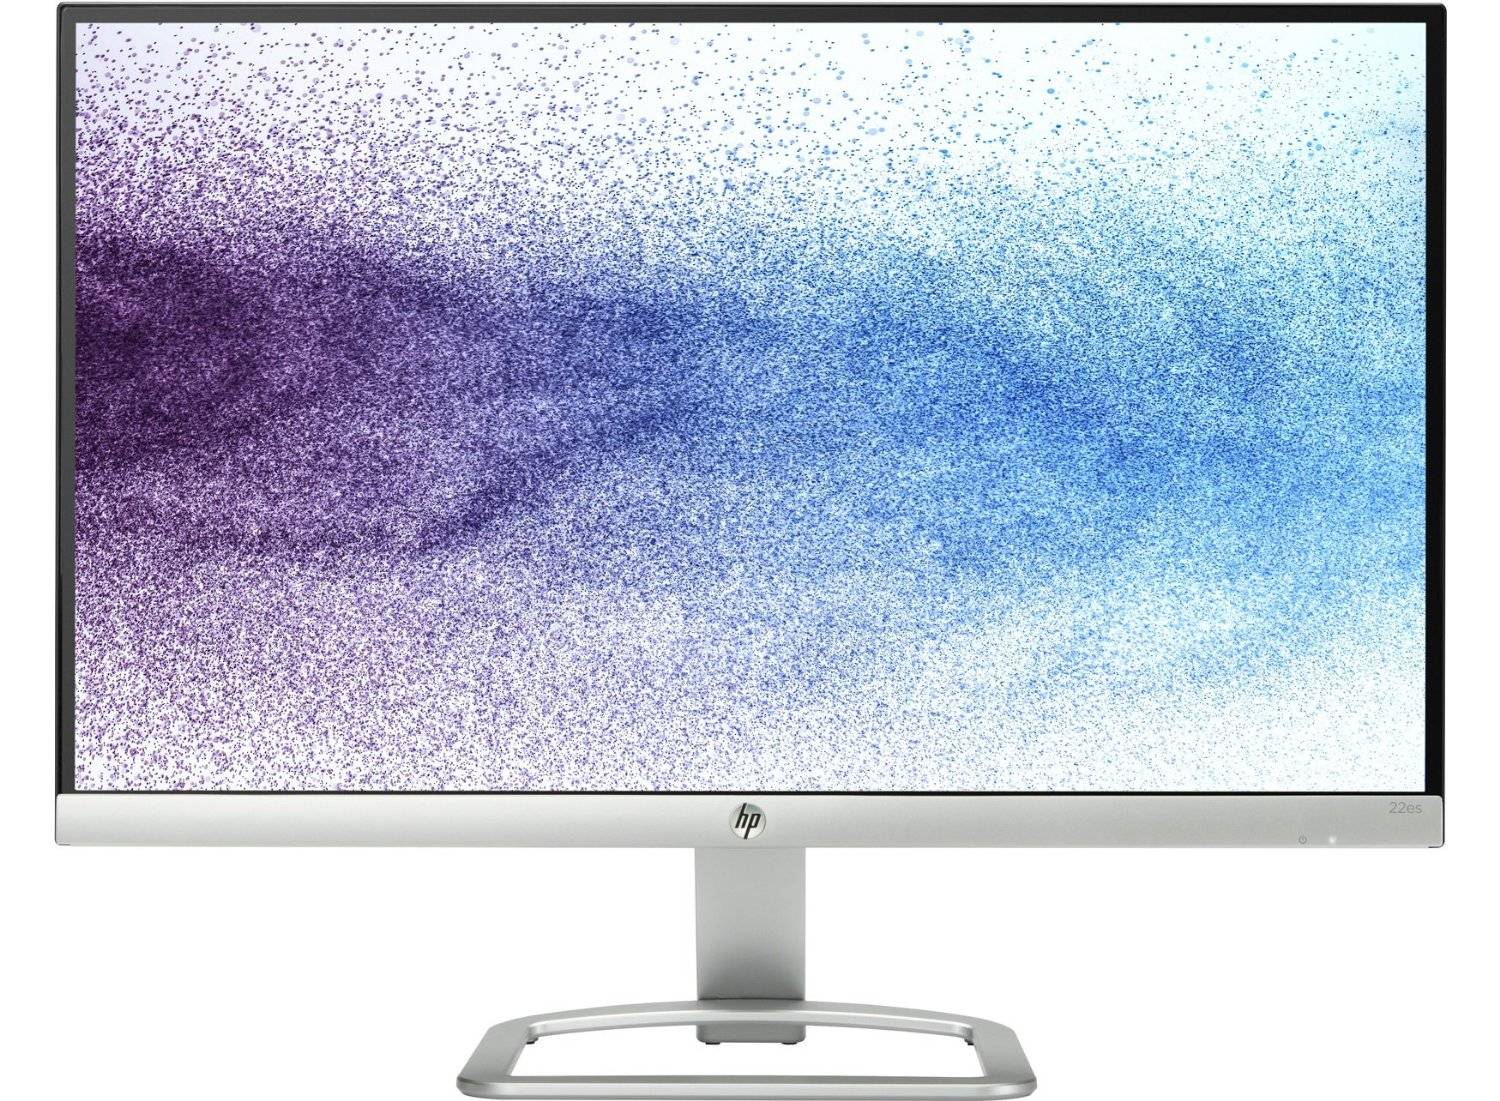 HP 22es Display 54.6 cm, 21.5 Inch THINNEST IPS LED Backlit Monitor with 1 year warranty